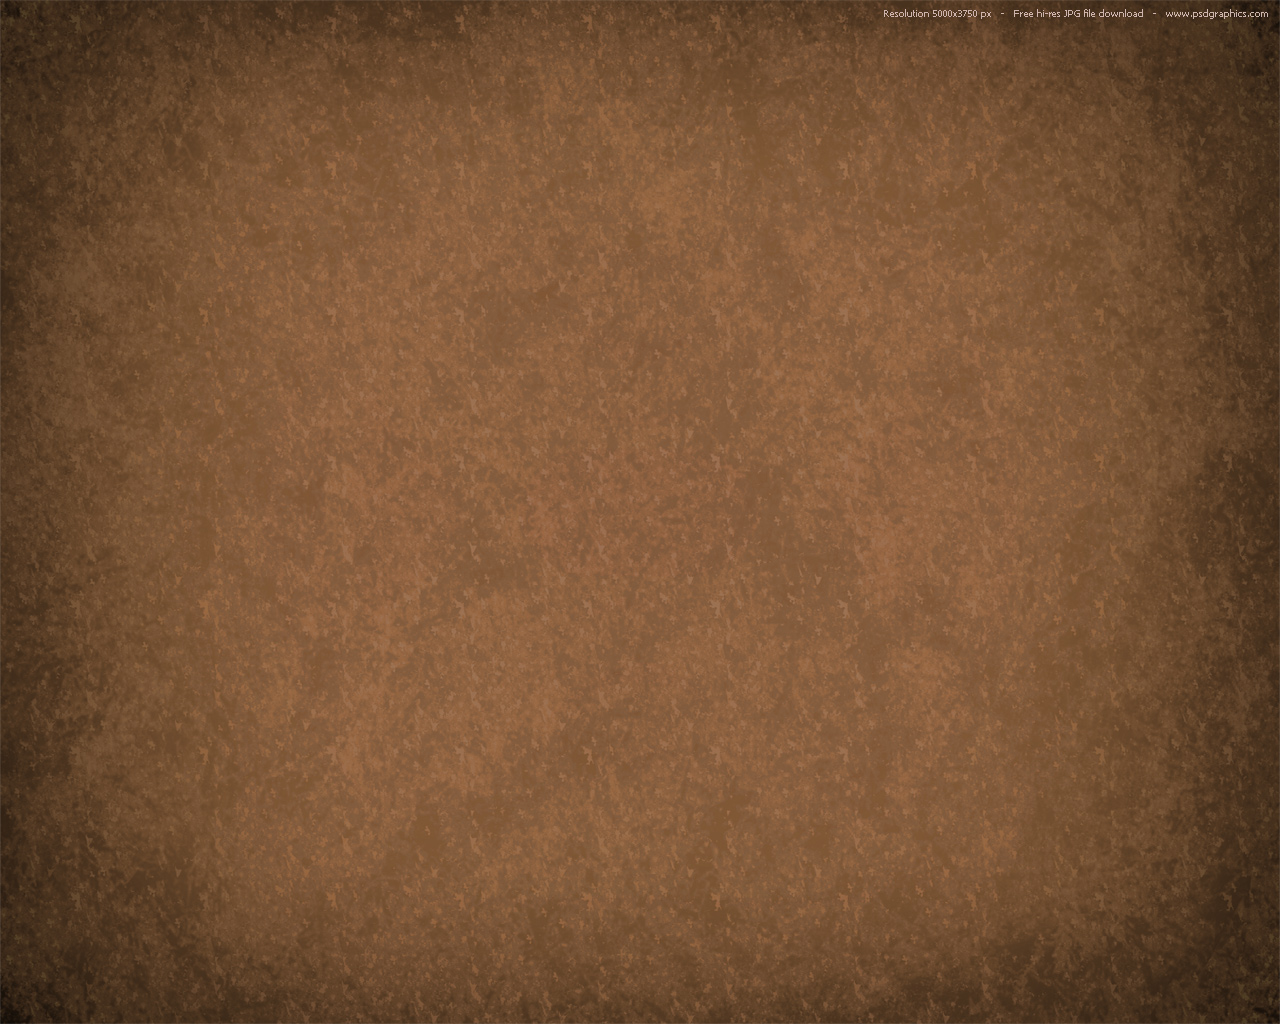 Red and brown grunge backgrounds PSDGraphics 1280x1024